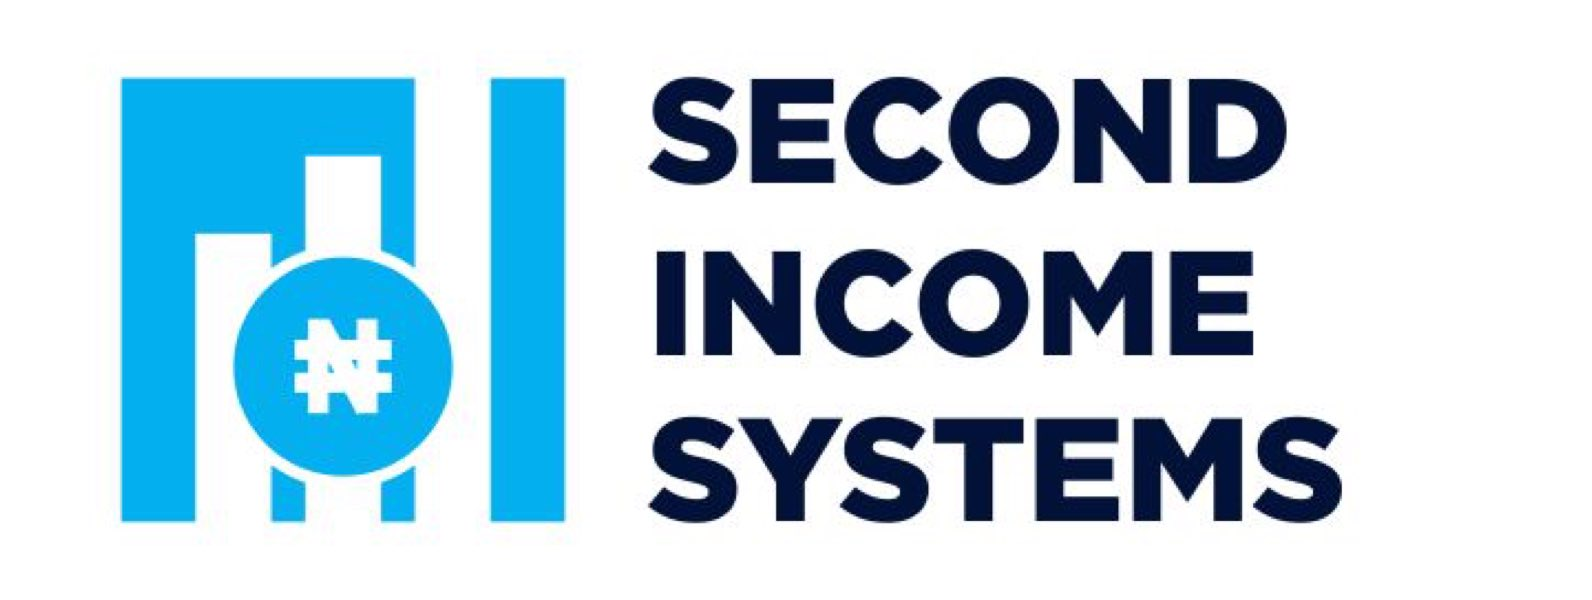 Second_Income_Systems